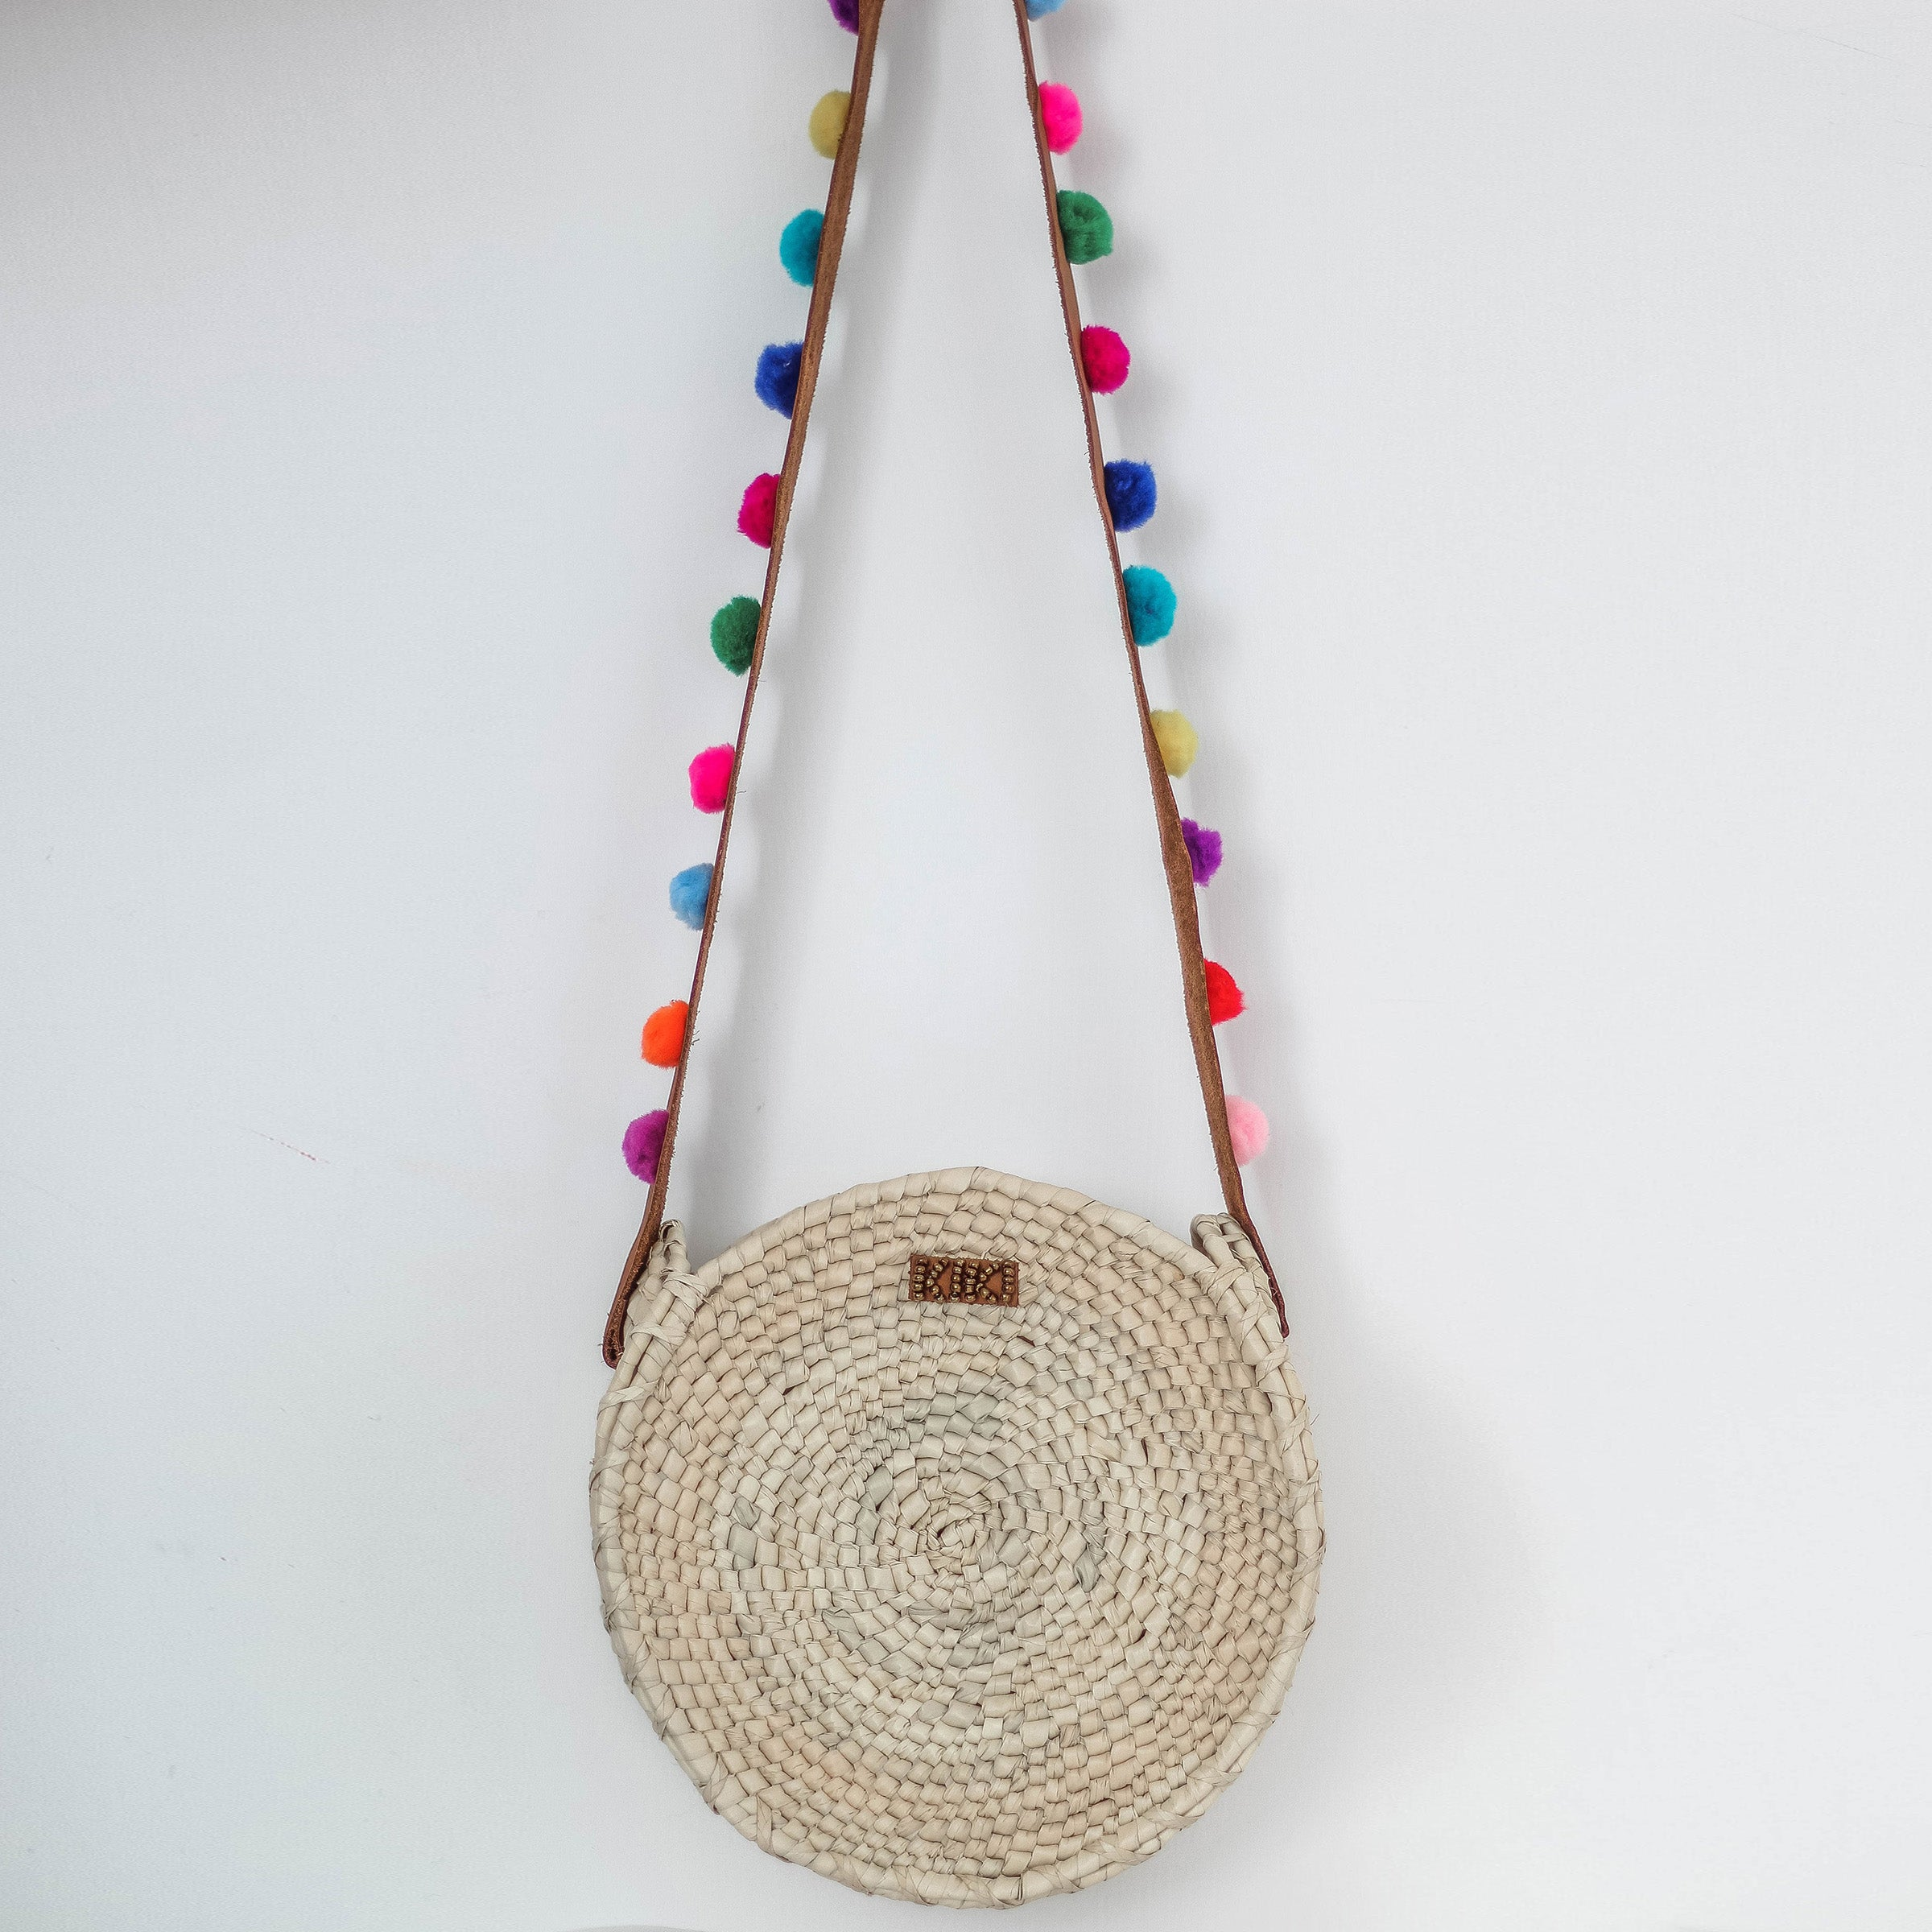 Handmade bag of palm with leather handles and colorful pom poms. 414f65fe8